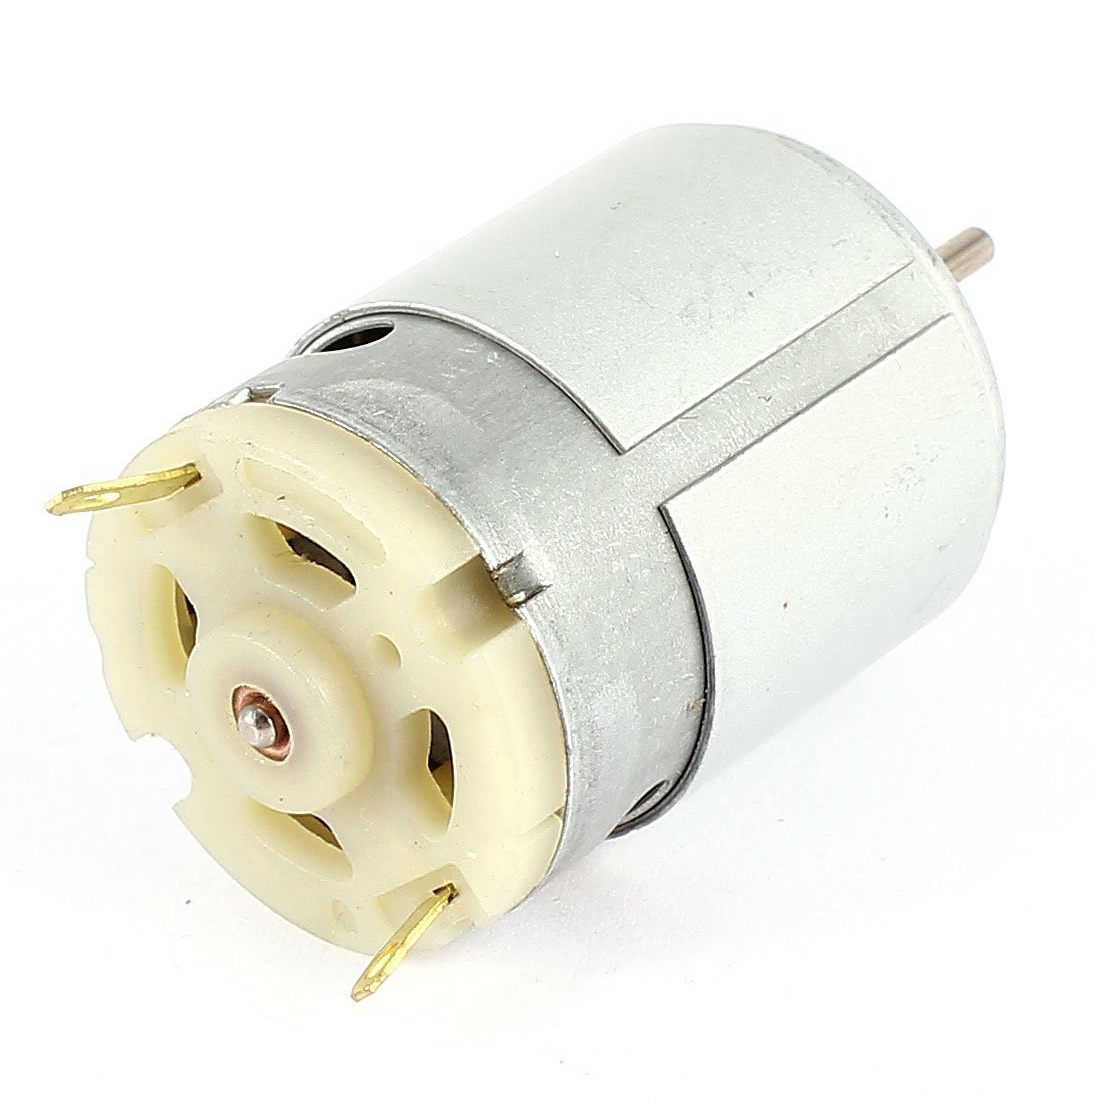 BIFI Hot RS380 DC 1.5-18V 30000RPM Micro Motor 38x28mm for RC Model Toys DIY, Silver